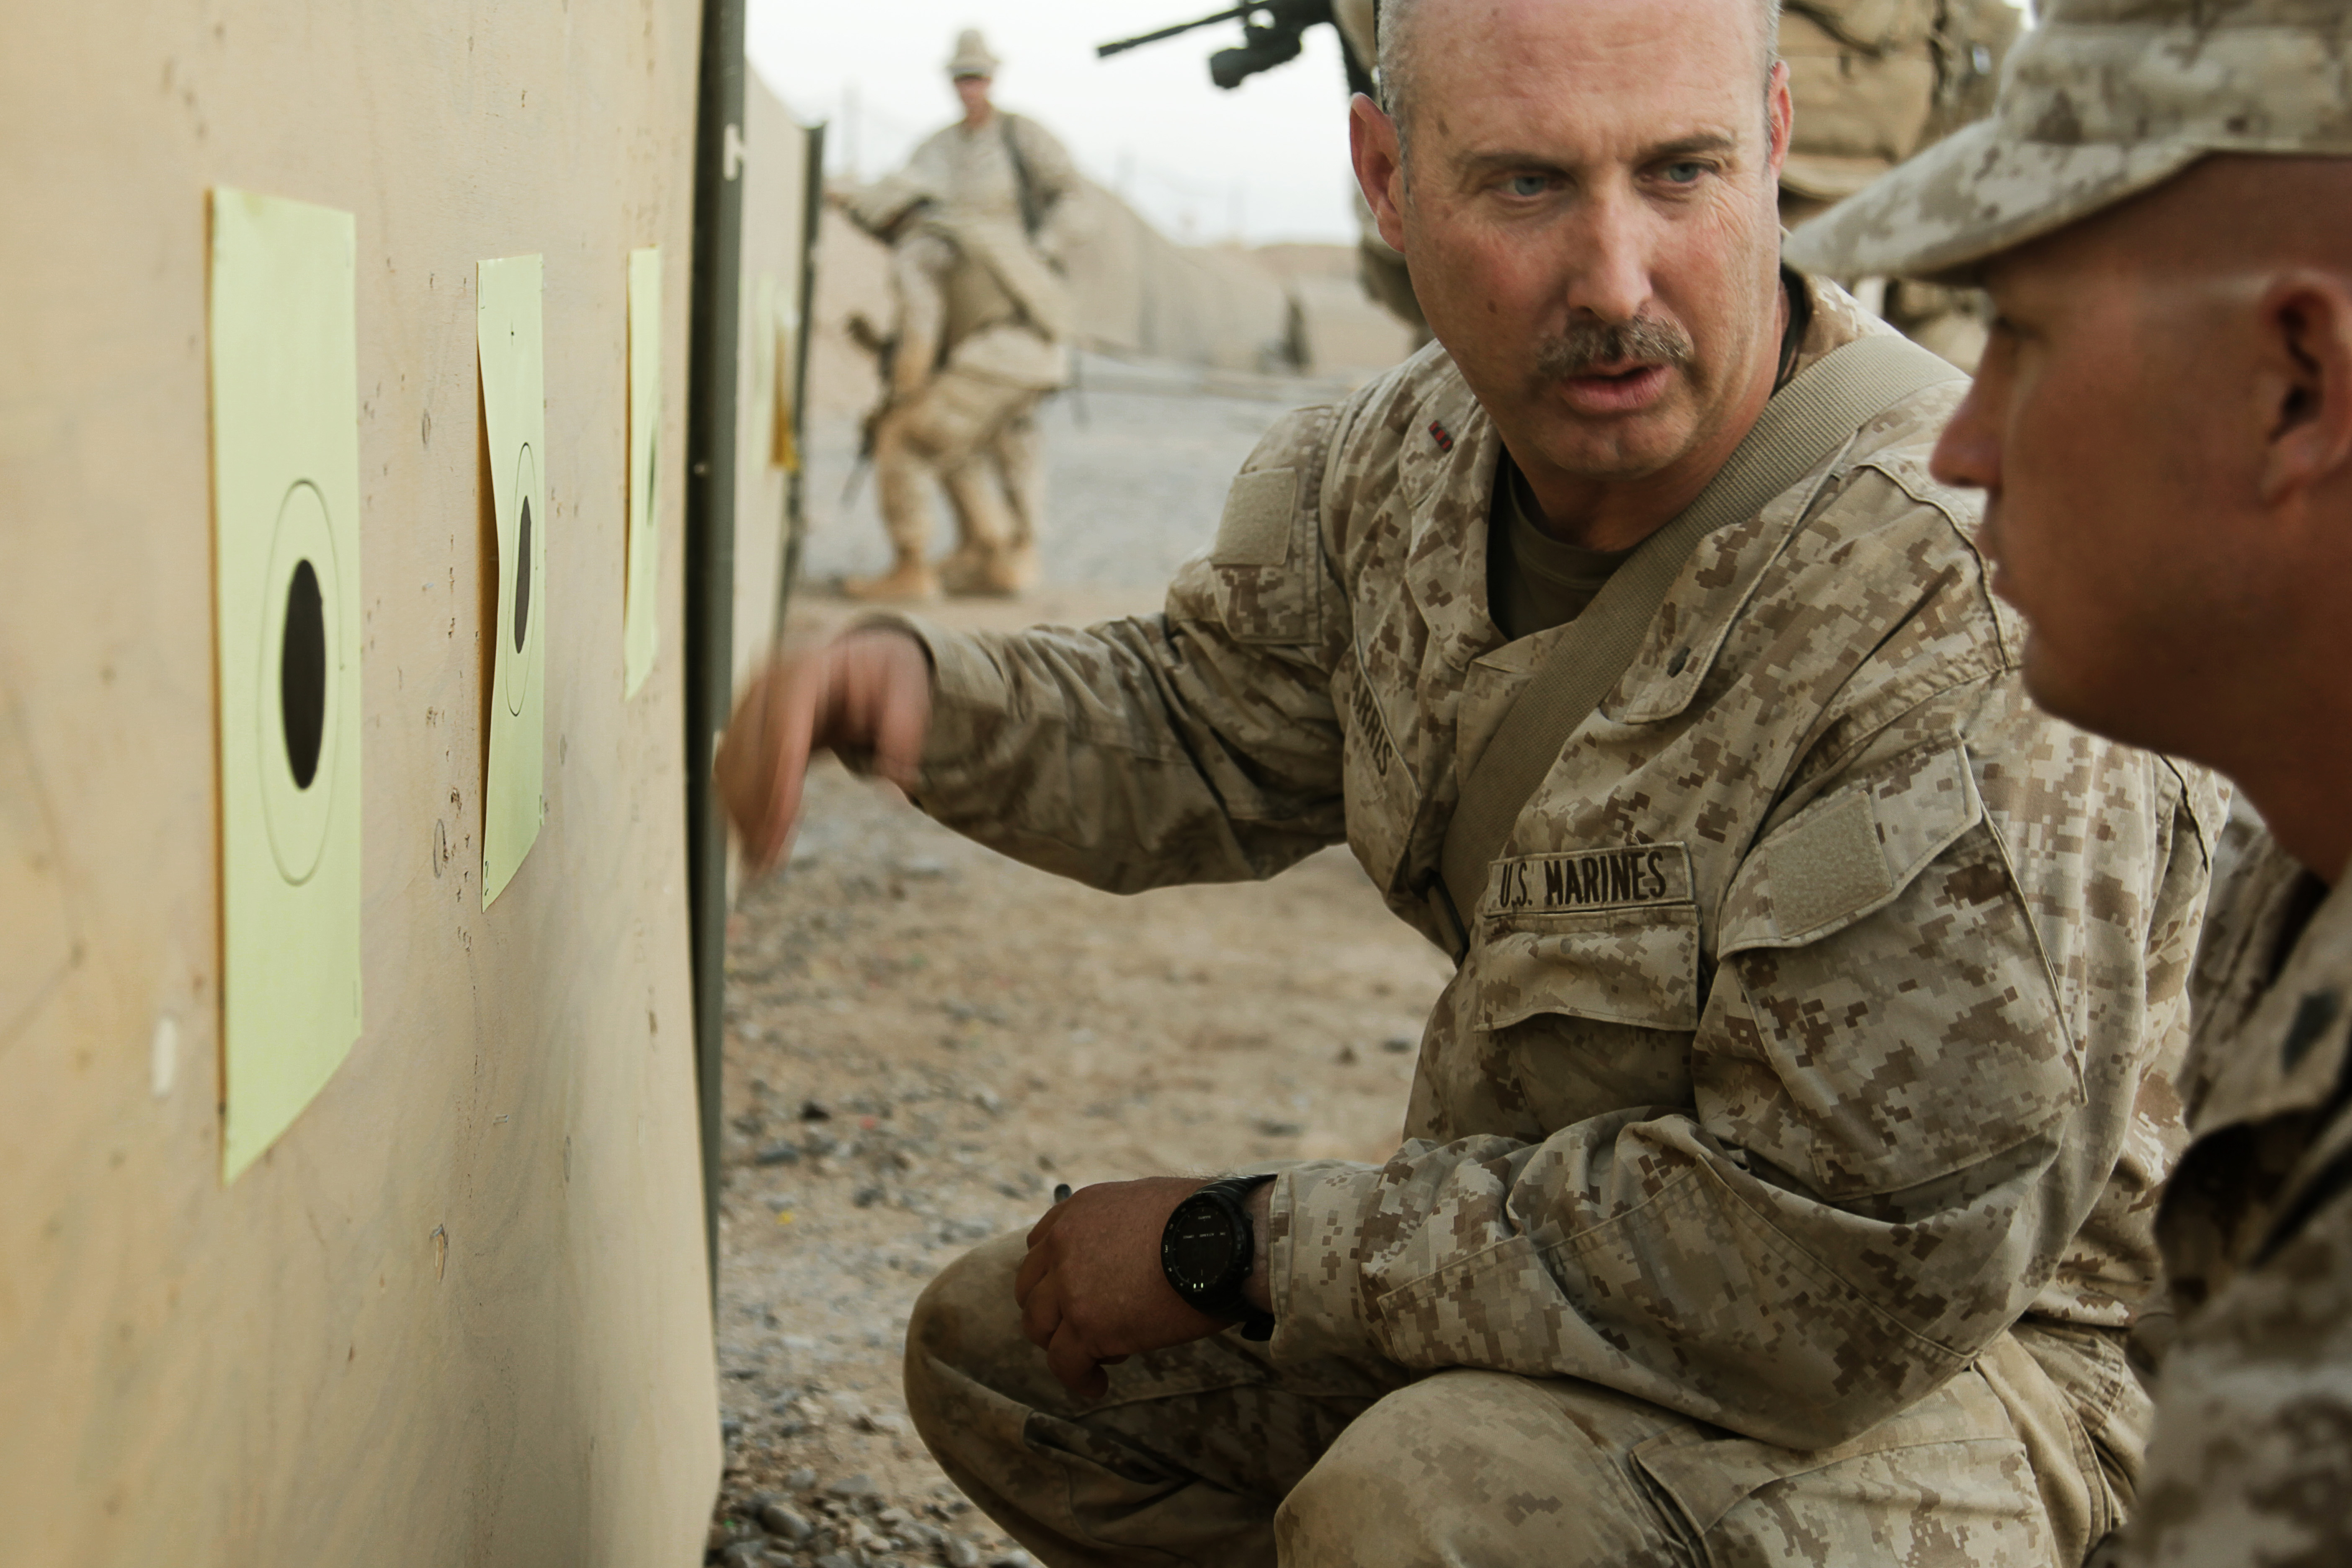 File:U.S. Marine Corps Chief Warrant Officer 4 Christopher ...